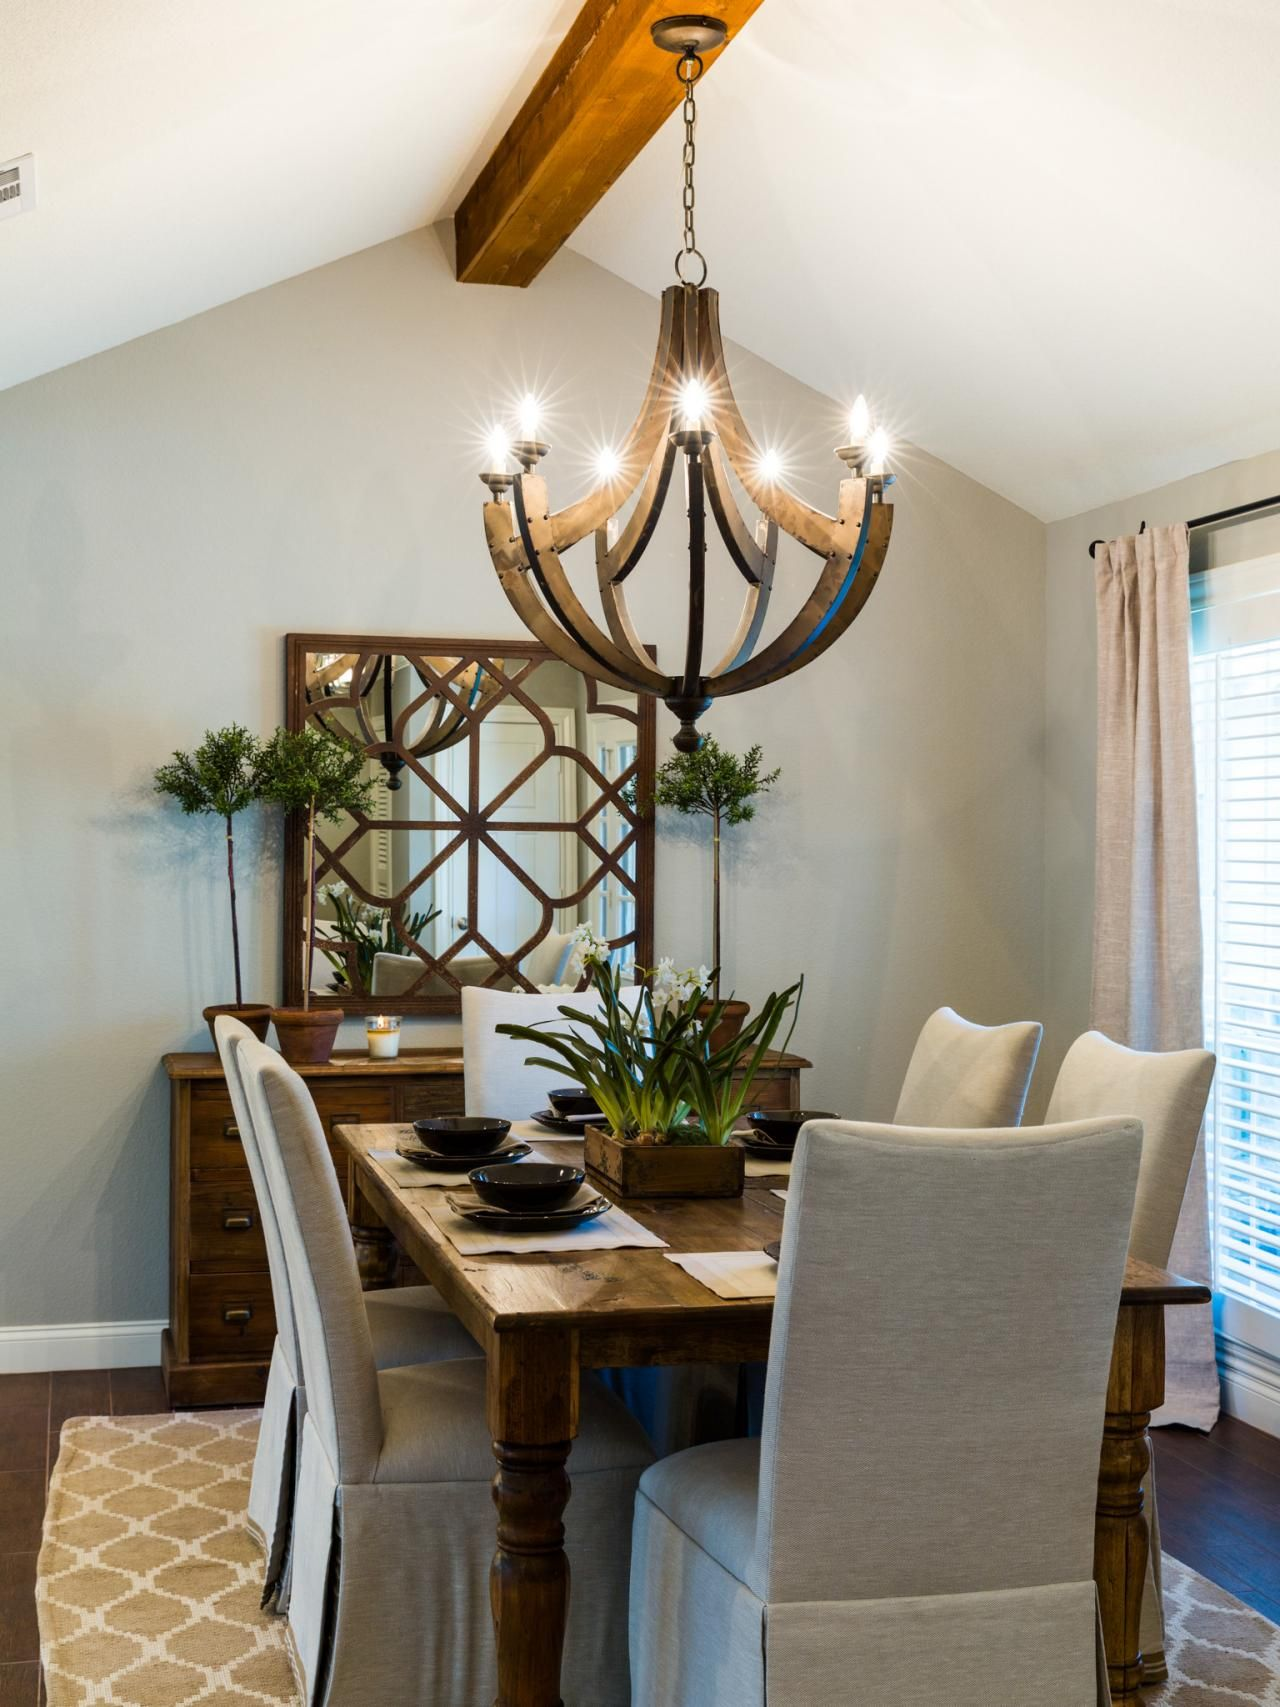 1968 Fixer Upper In An Older Neighborhood Gets A Fresh Update Wooden ChandelierWine Barrel ChandelierChandelier IdeasDining Room ChandeliersDining